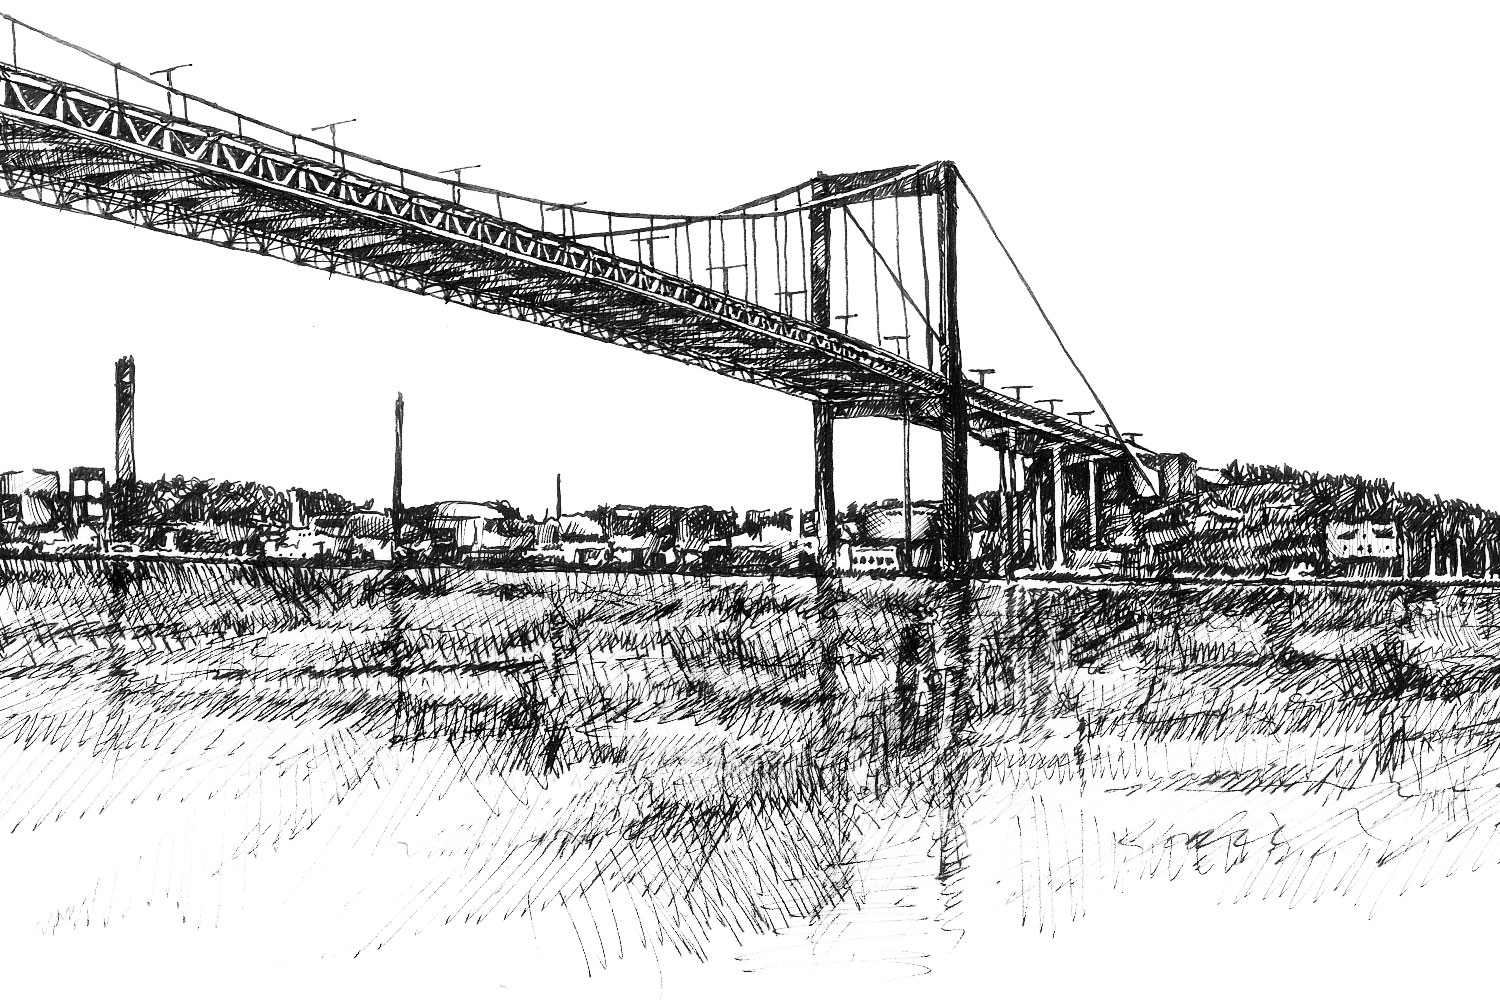 An illustration of the Älvsborgs Bridge in Gothenburg that appears on the labels of Beerbliotek Craft Brewery's first generation labels.